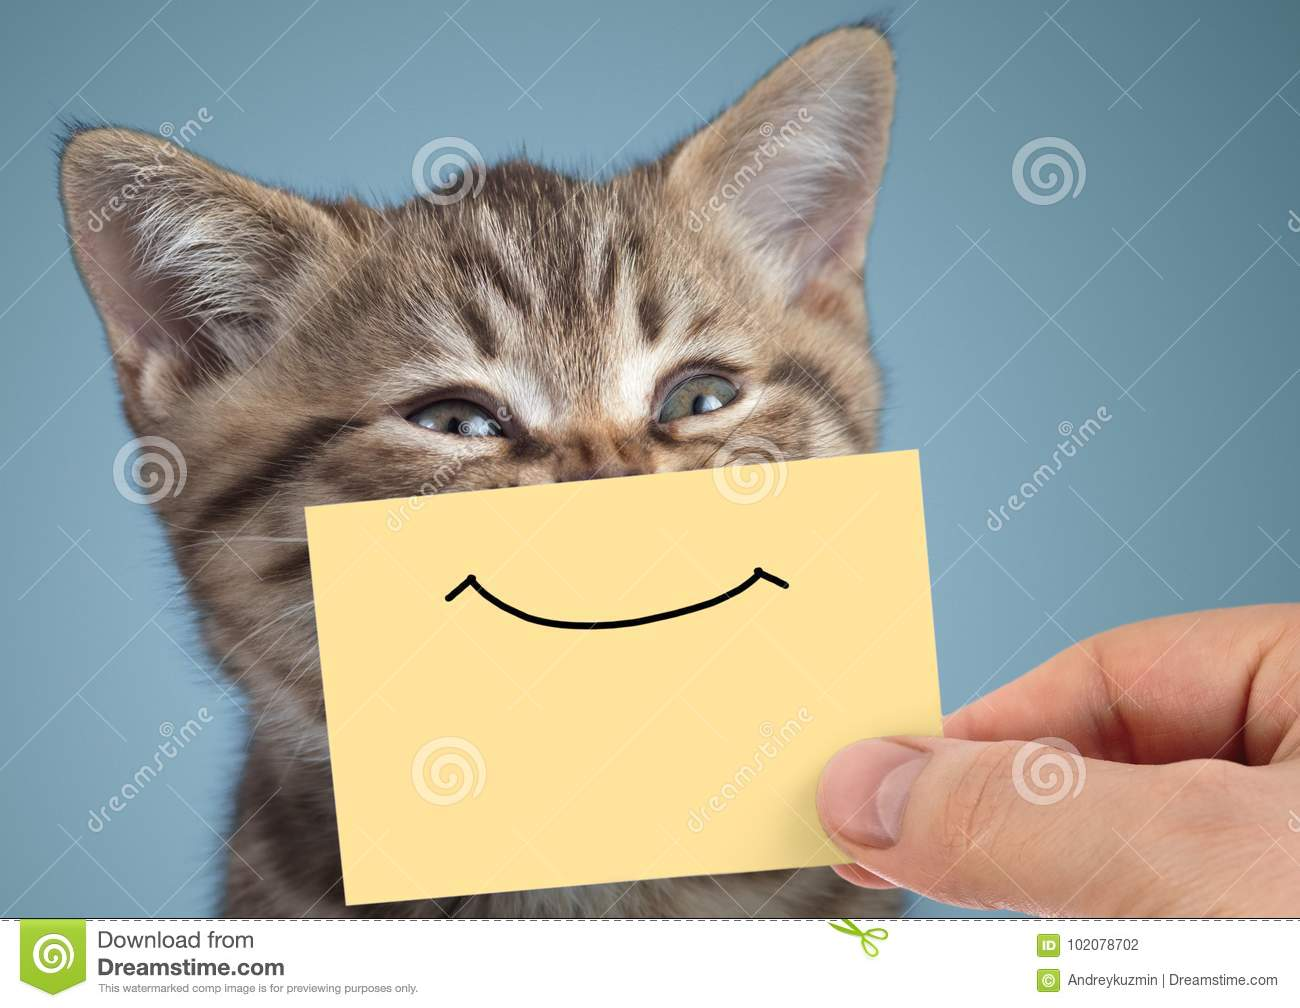 Happy cat closeup portrait with funny smile on cardboard